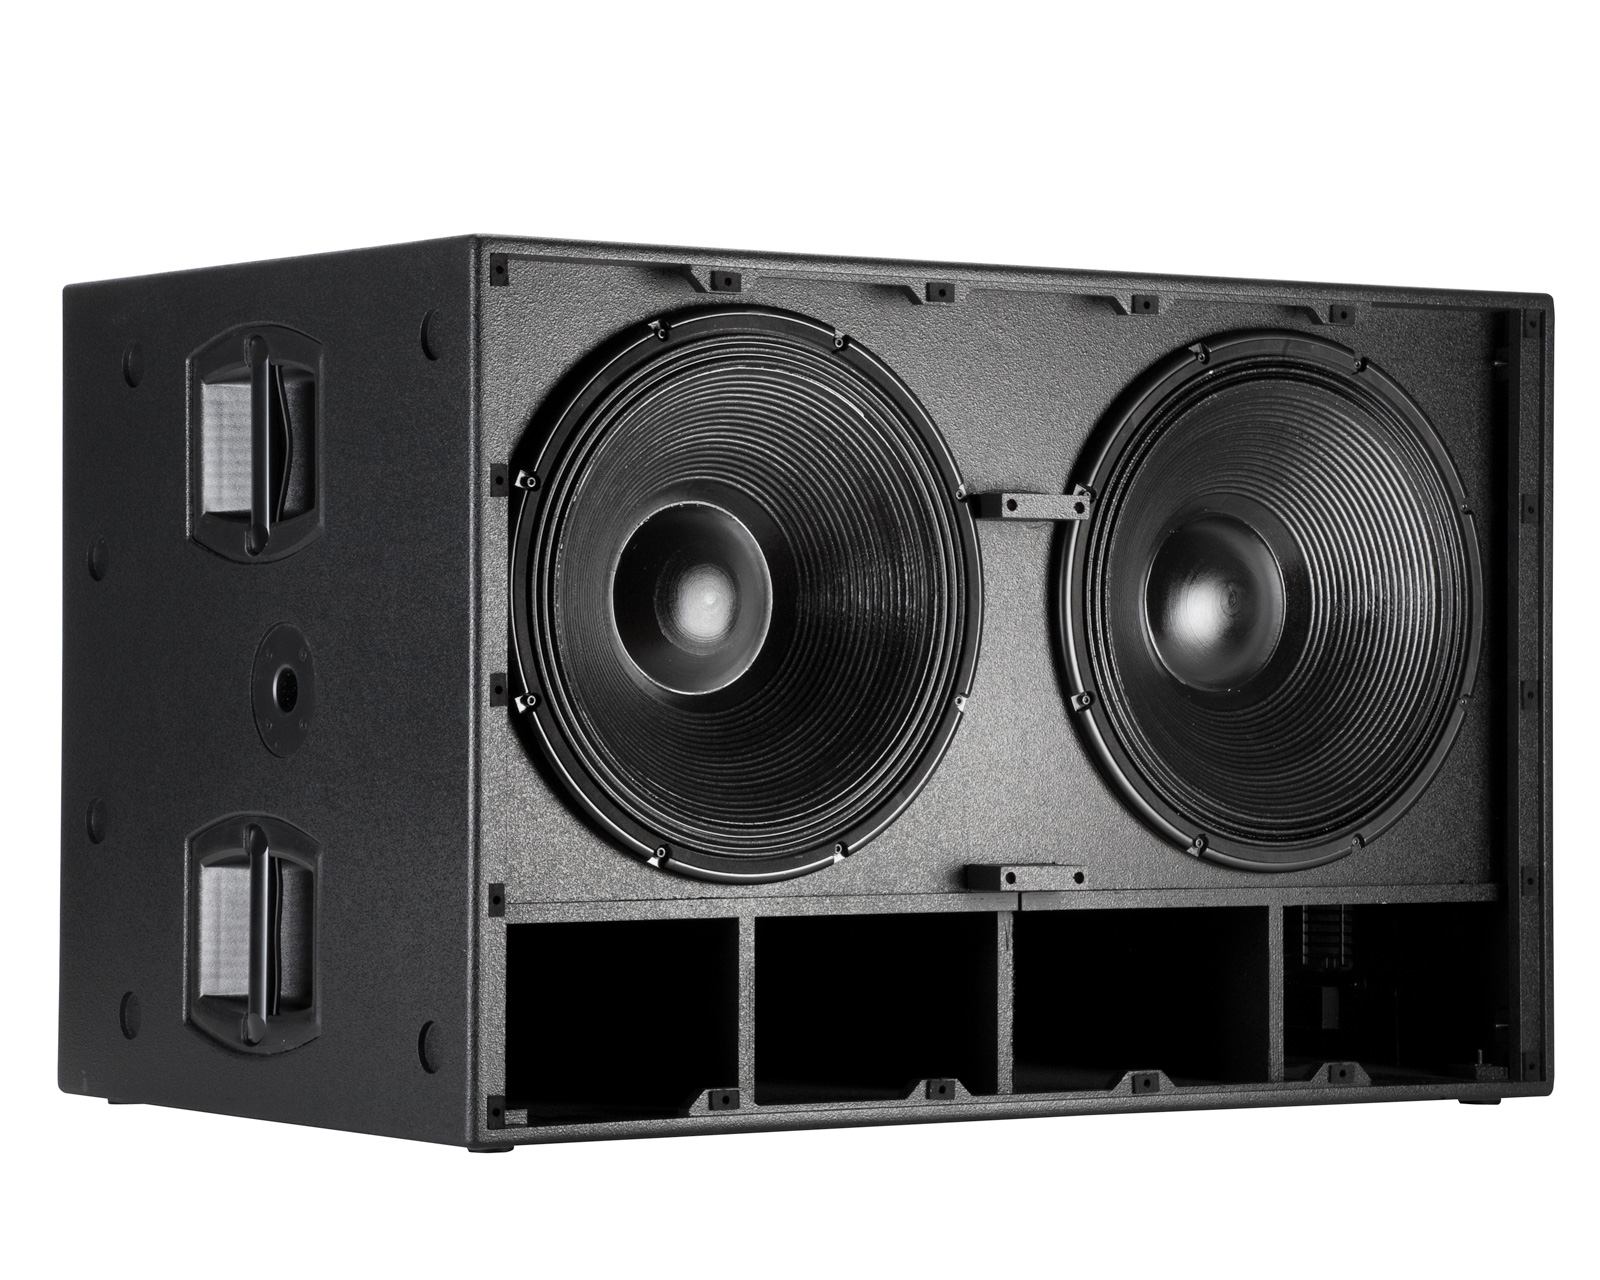 Rcf Sub 8006 A Active High Power 18 Inch 5000 Watts